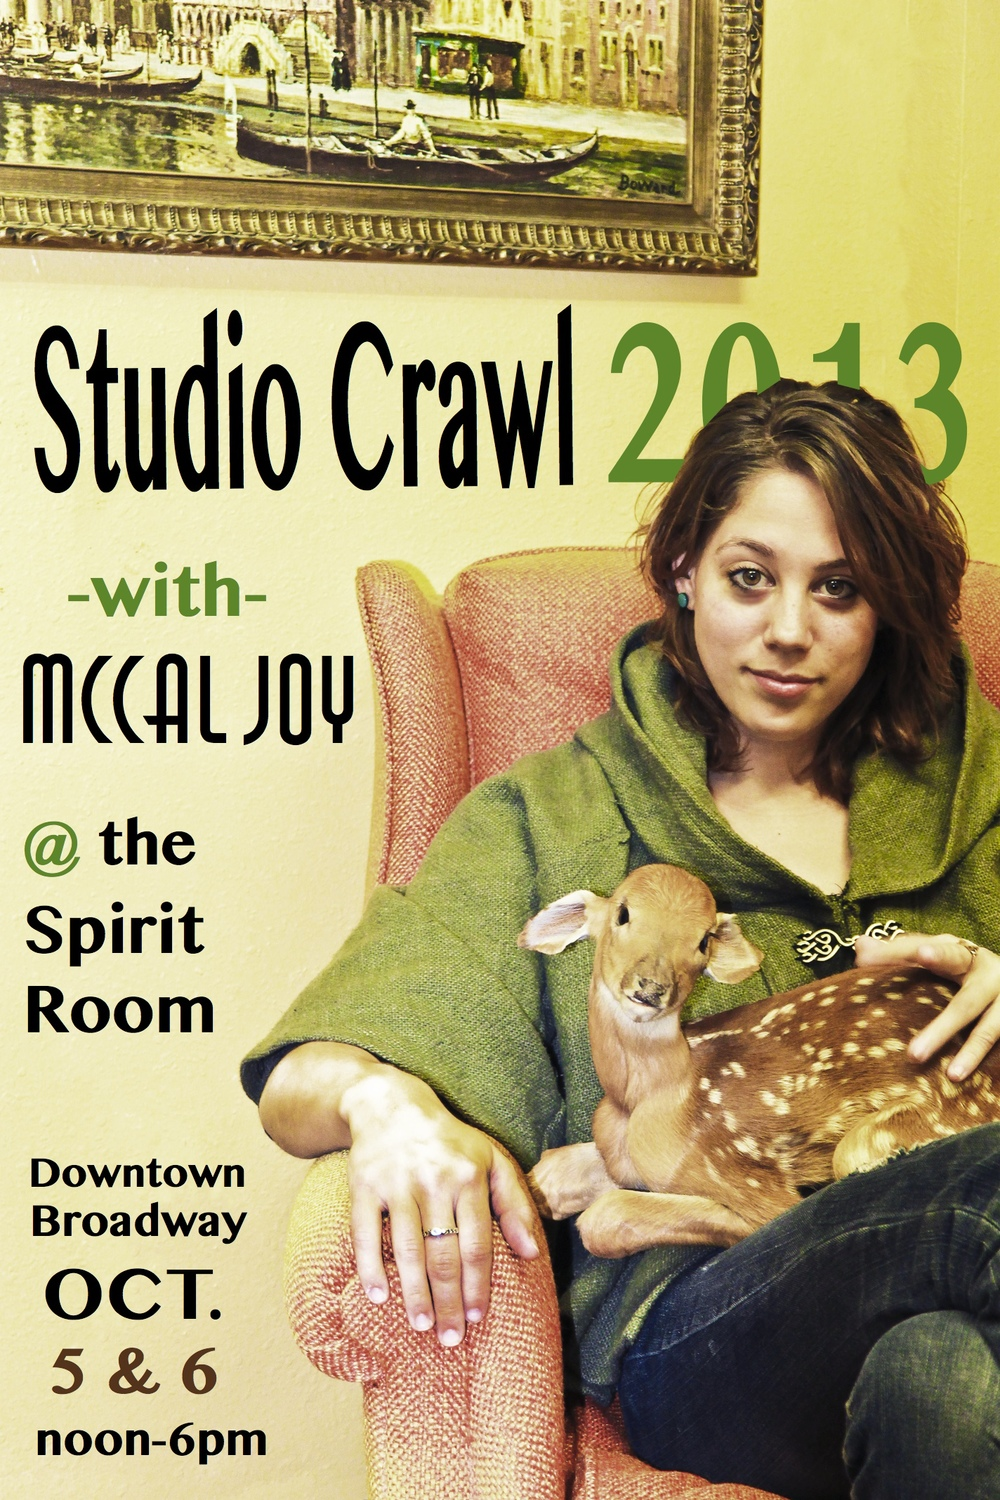 Studio Crawl 2013 - Spirit Room Studios - October 5th